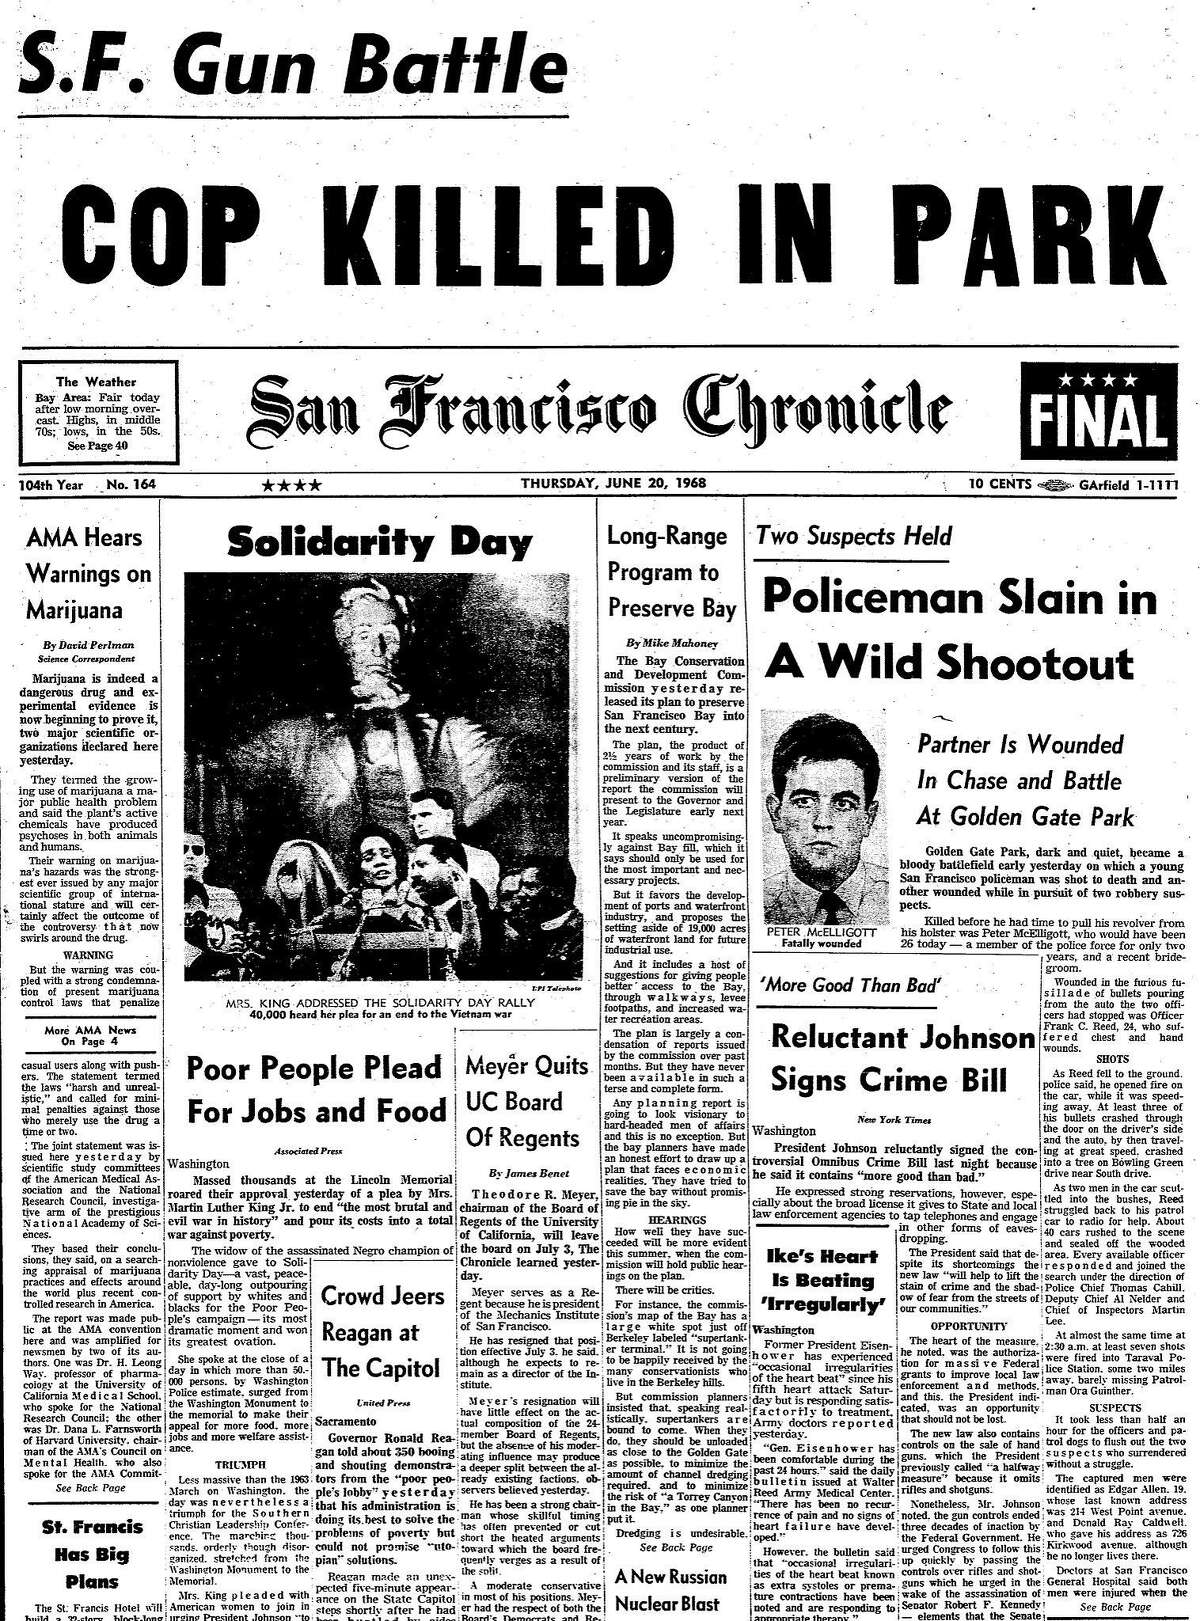 Chronicle June 20, 11968 front page reporting on gun battle in Golden Gate Park Police officer Peter McElligott was killed